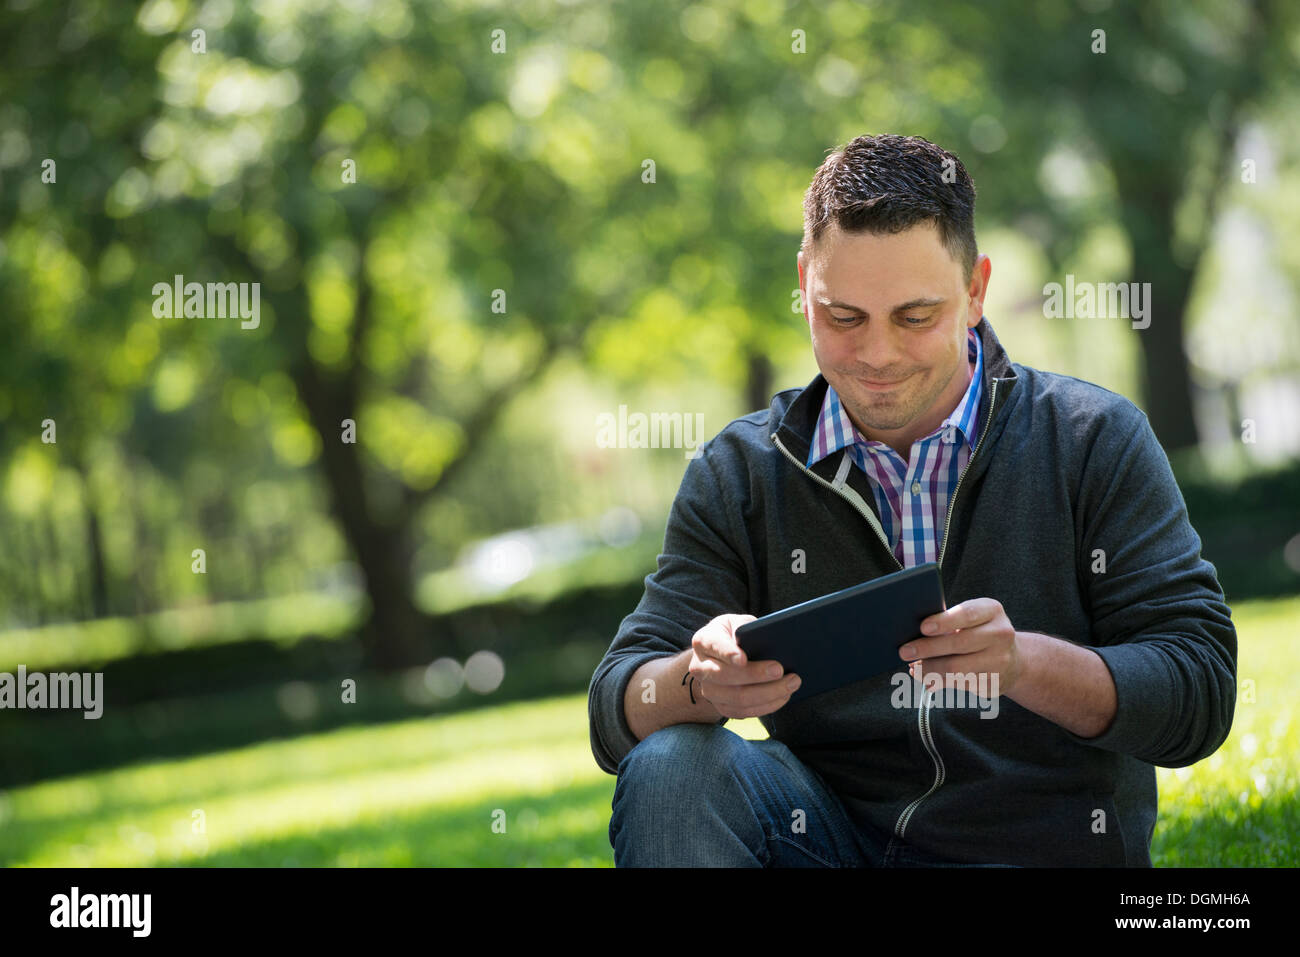 Summer. Business people. A man sitting using a digital tablet, keeping in touch. Stock Photo